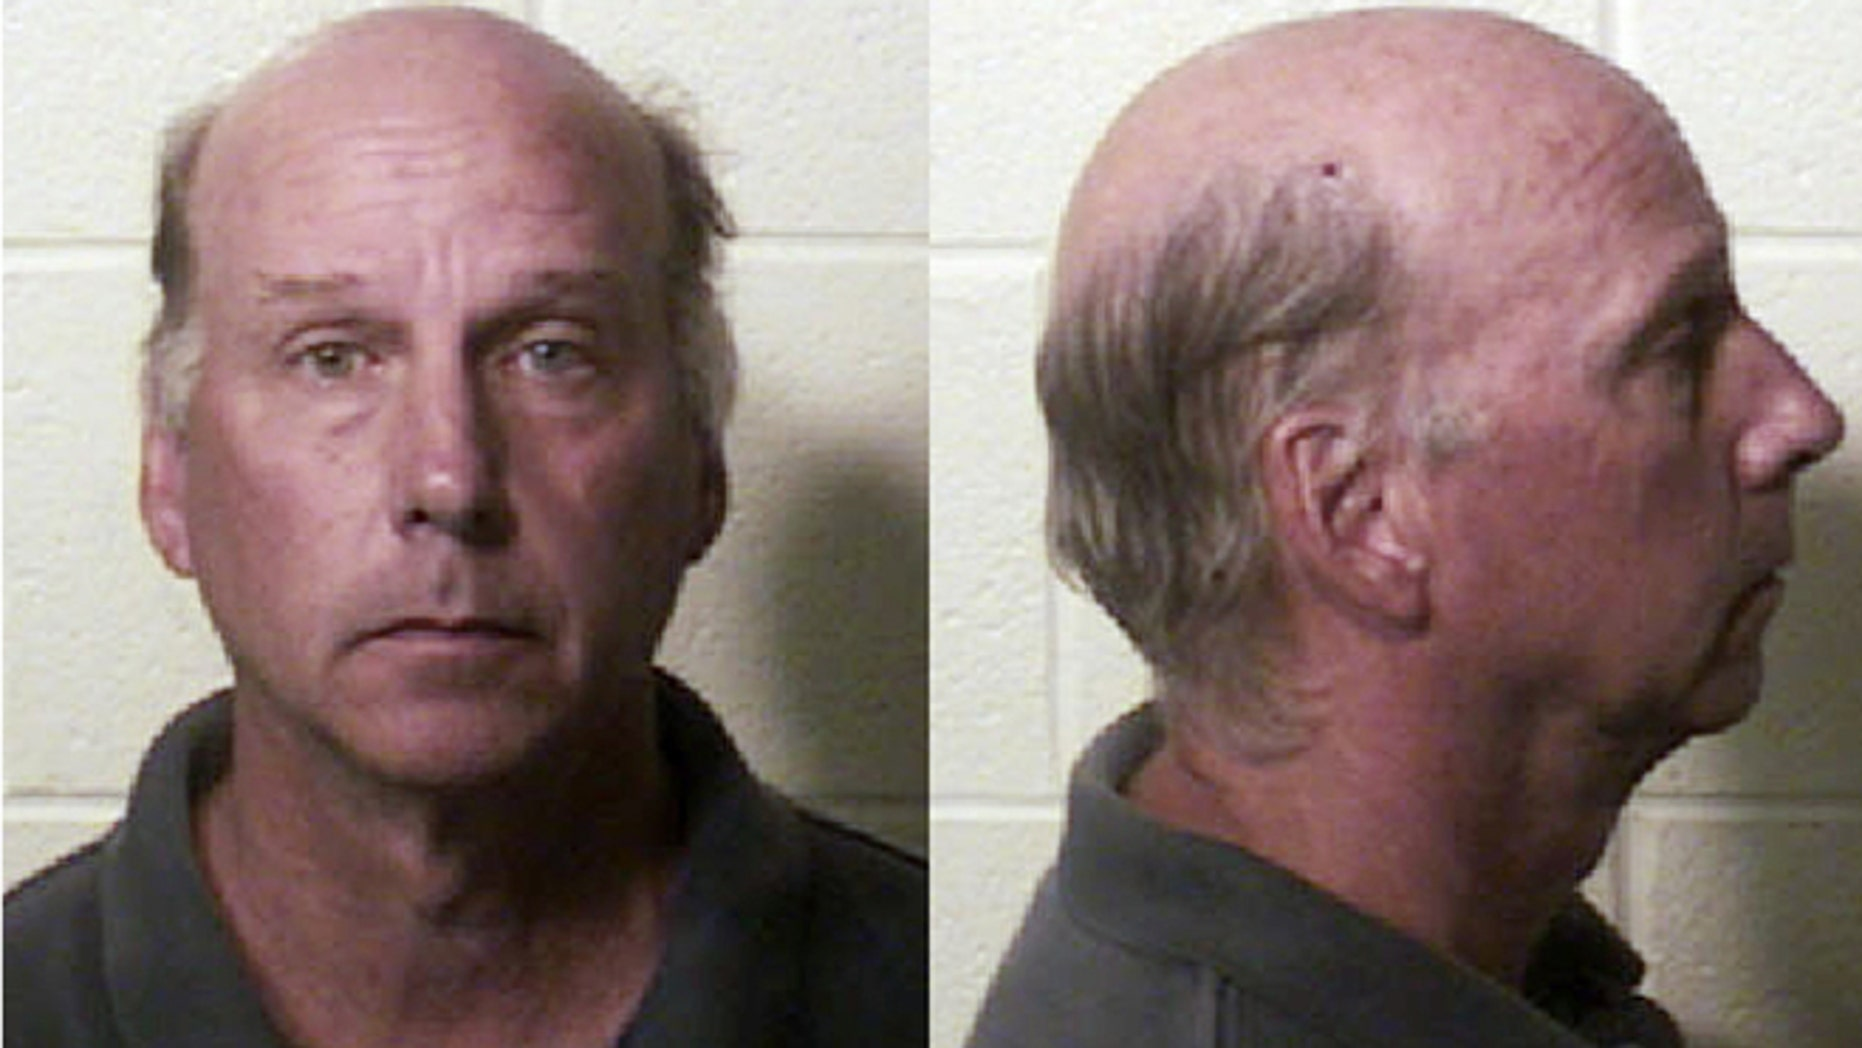 William Howell Masters III, 60, the son of sex research pioneer Dr. William H. Masters, has been charged with exposing himself to a sheriff's deputy and another woman.